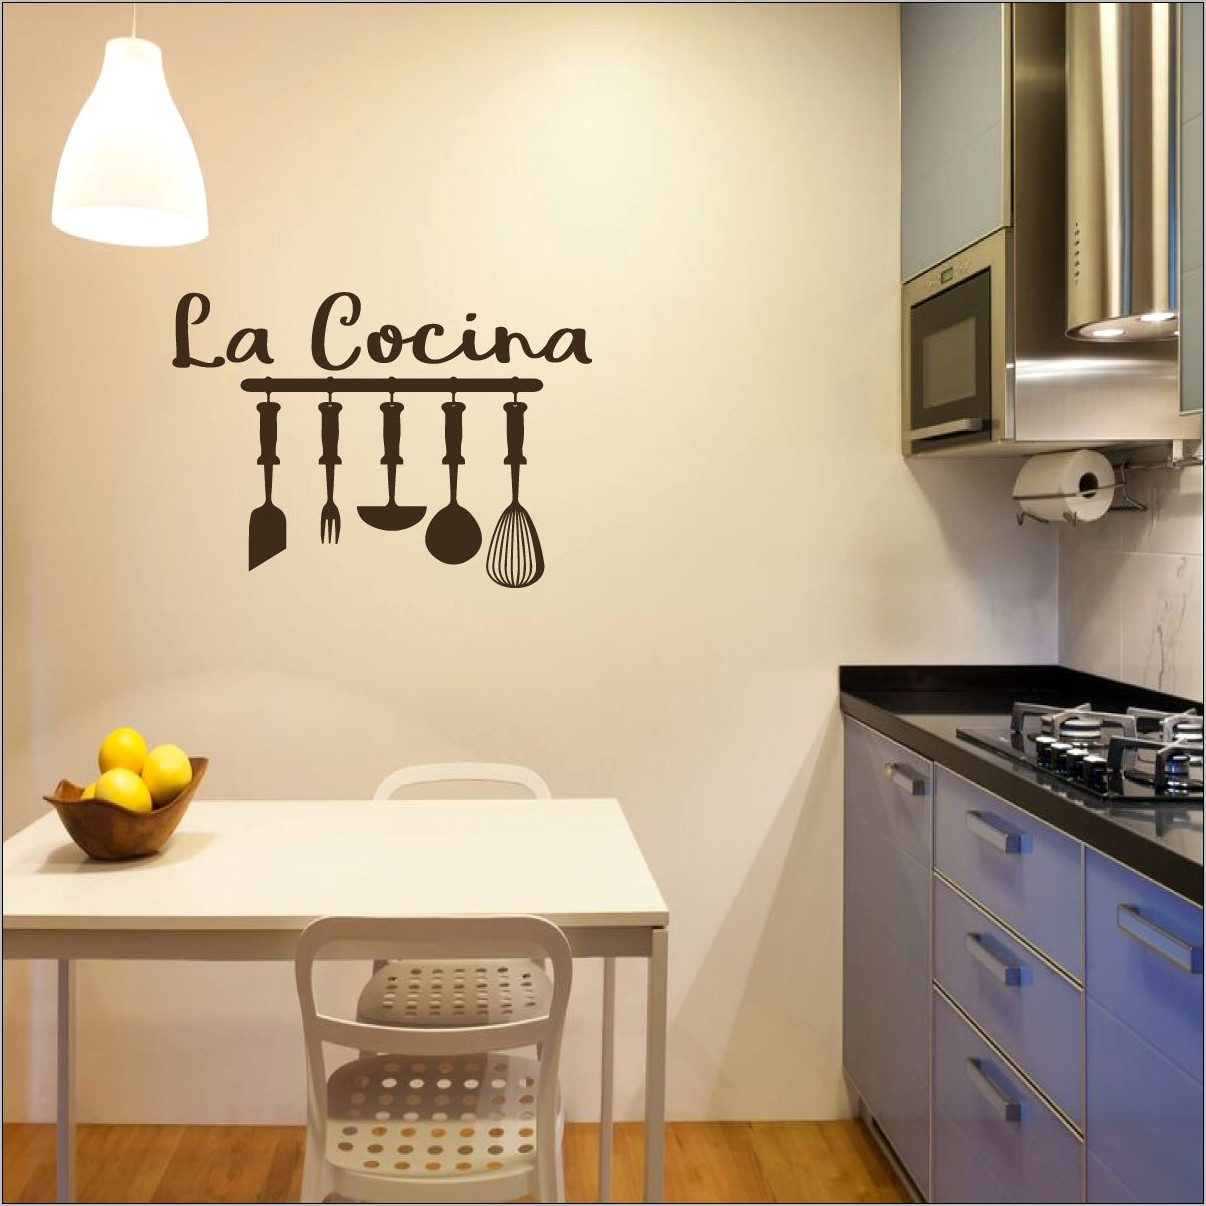 Spanish Themed Kitchen Decor